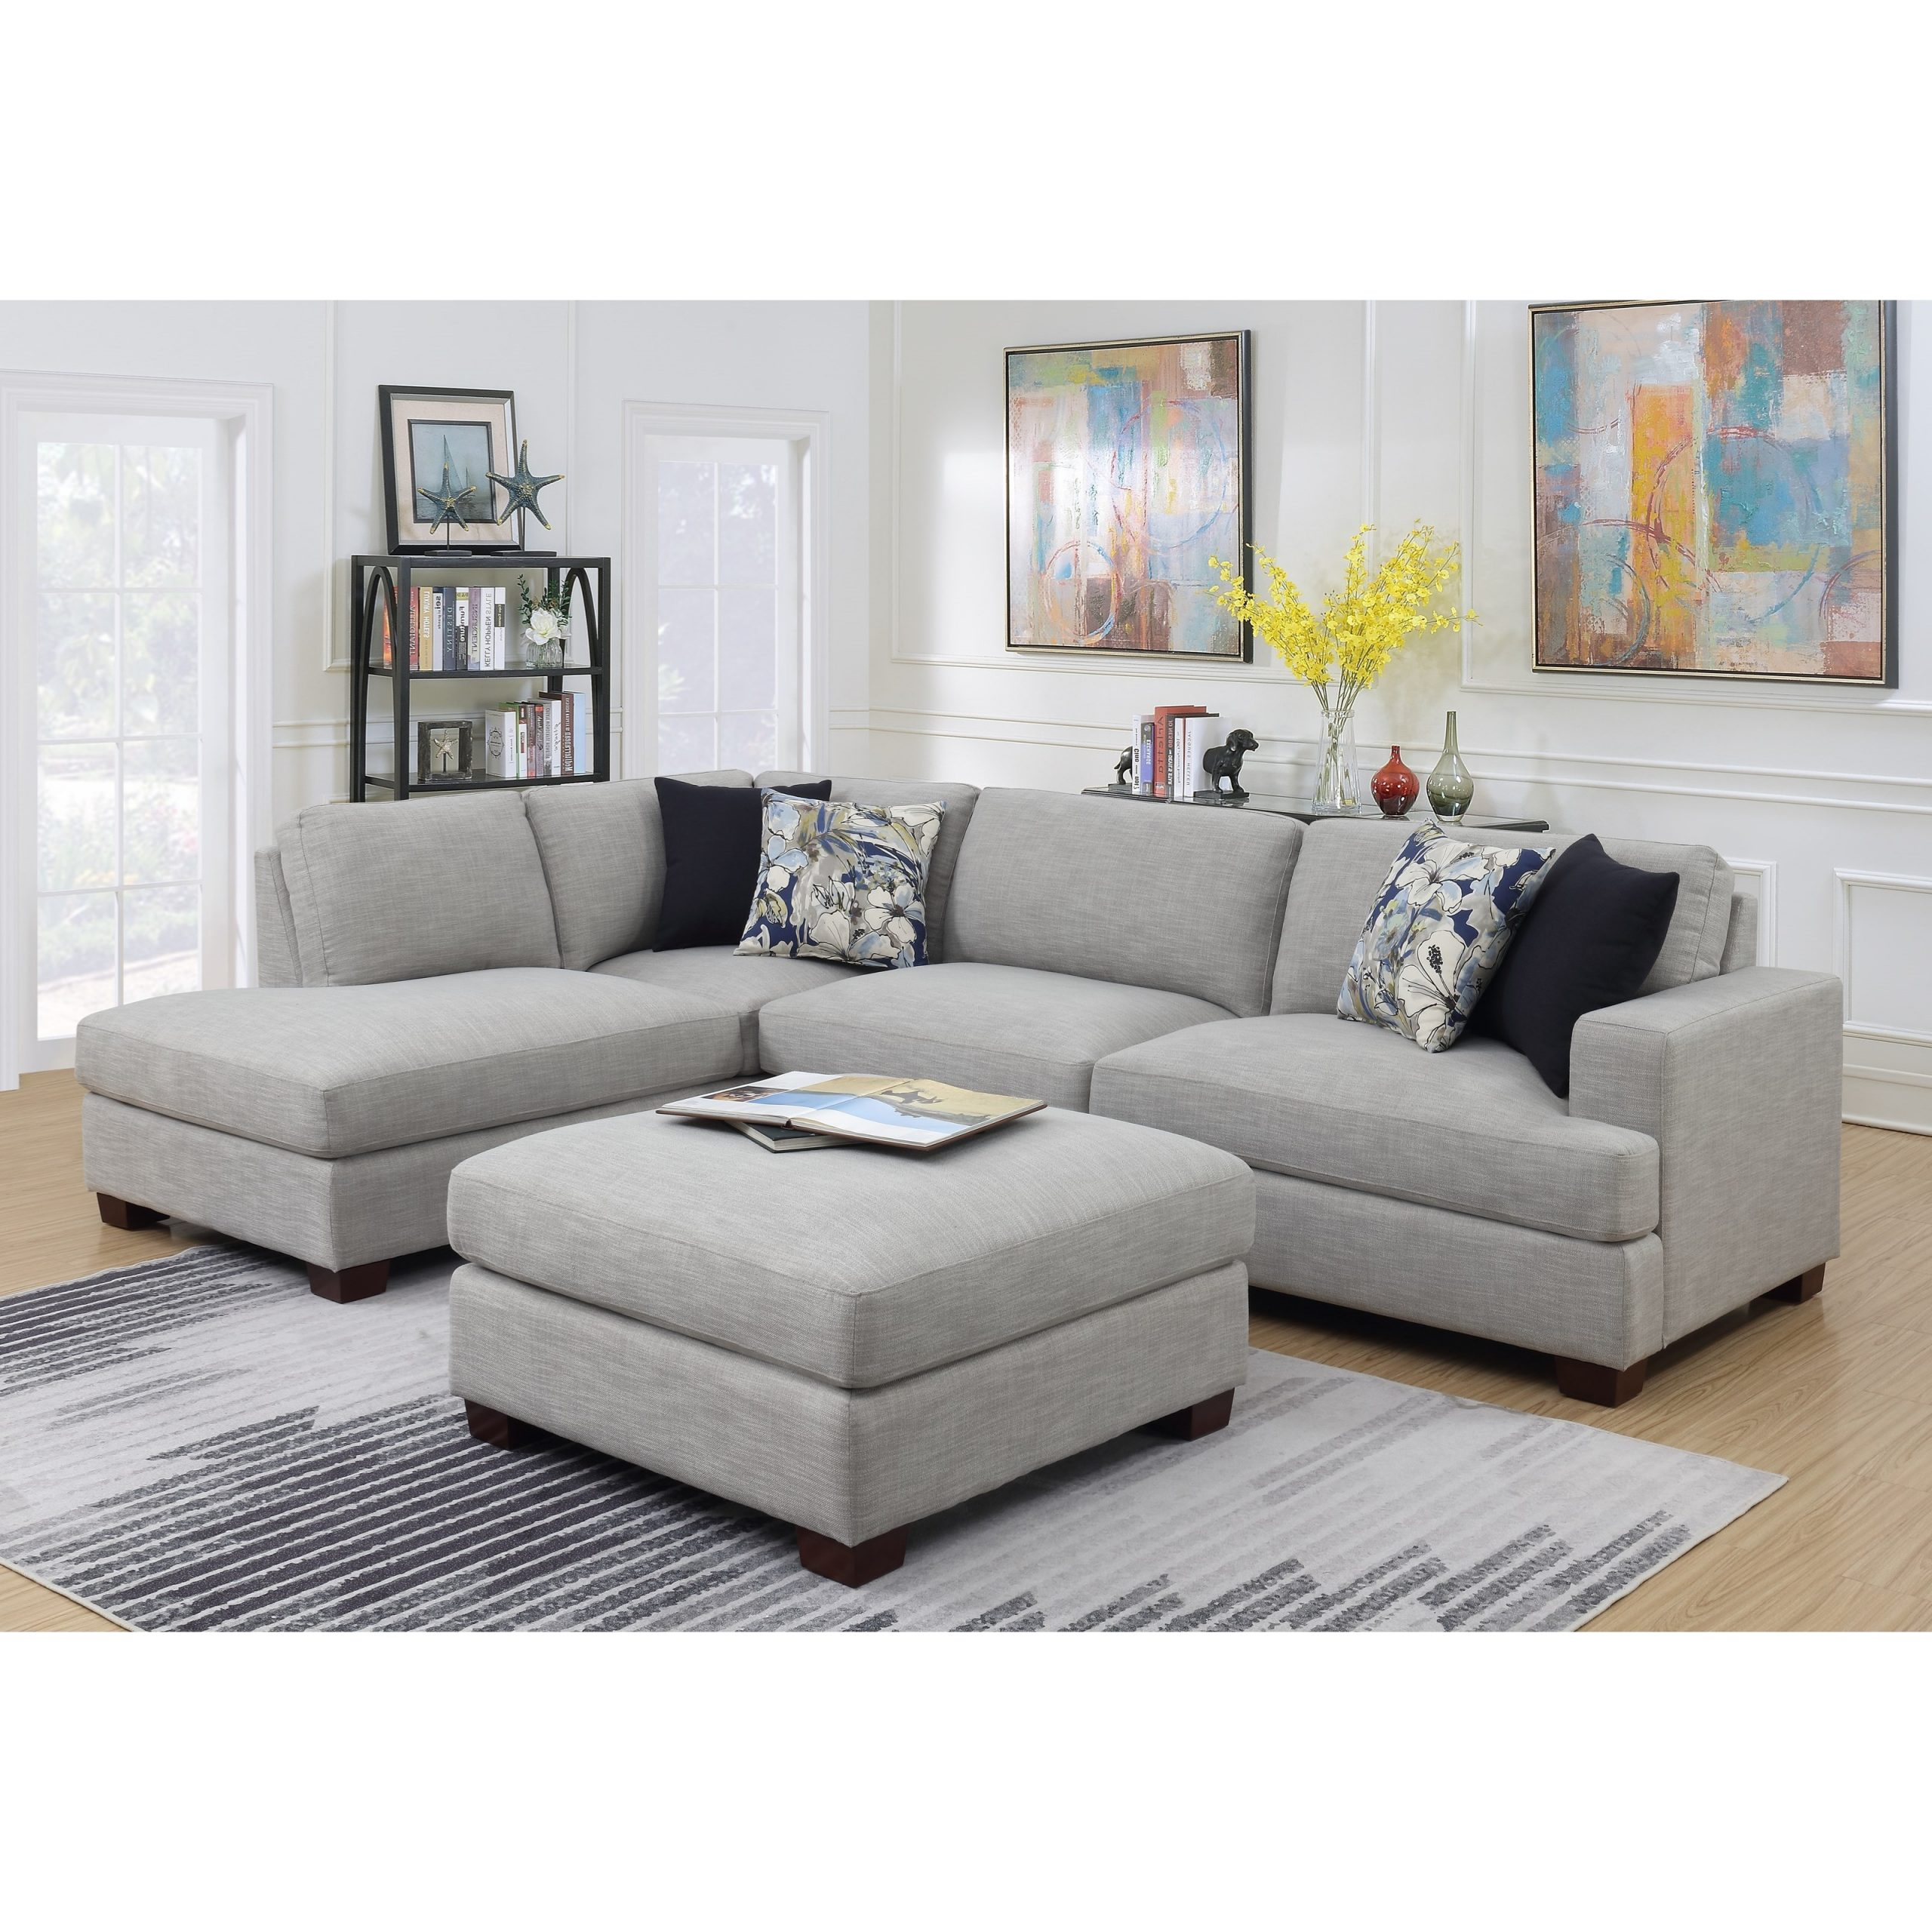 Emerald Vernon Contemporary 2 Piece Sectional Sofa With Pertaining To Most Popular 2pc Connel Modern Chaise Sectional Sofas Black (View 1 of 20)